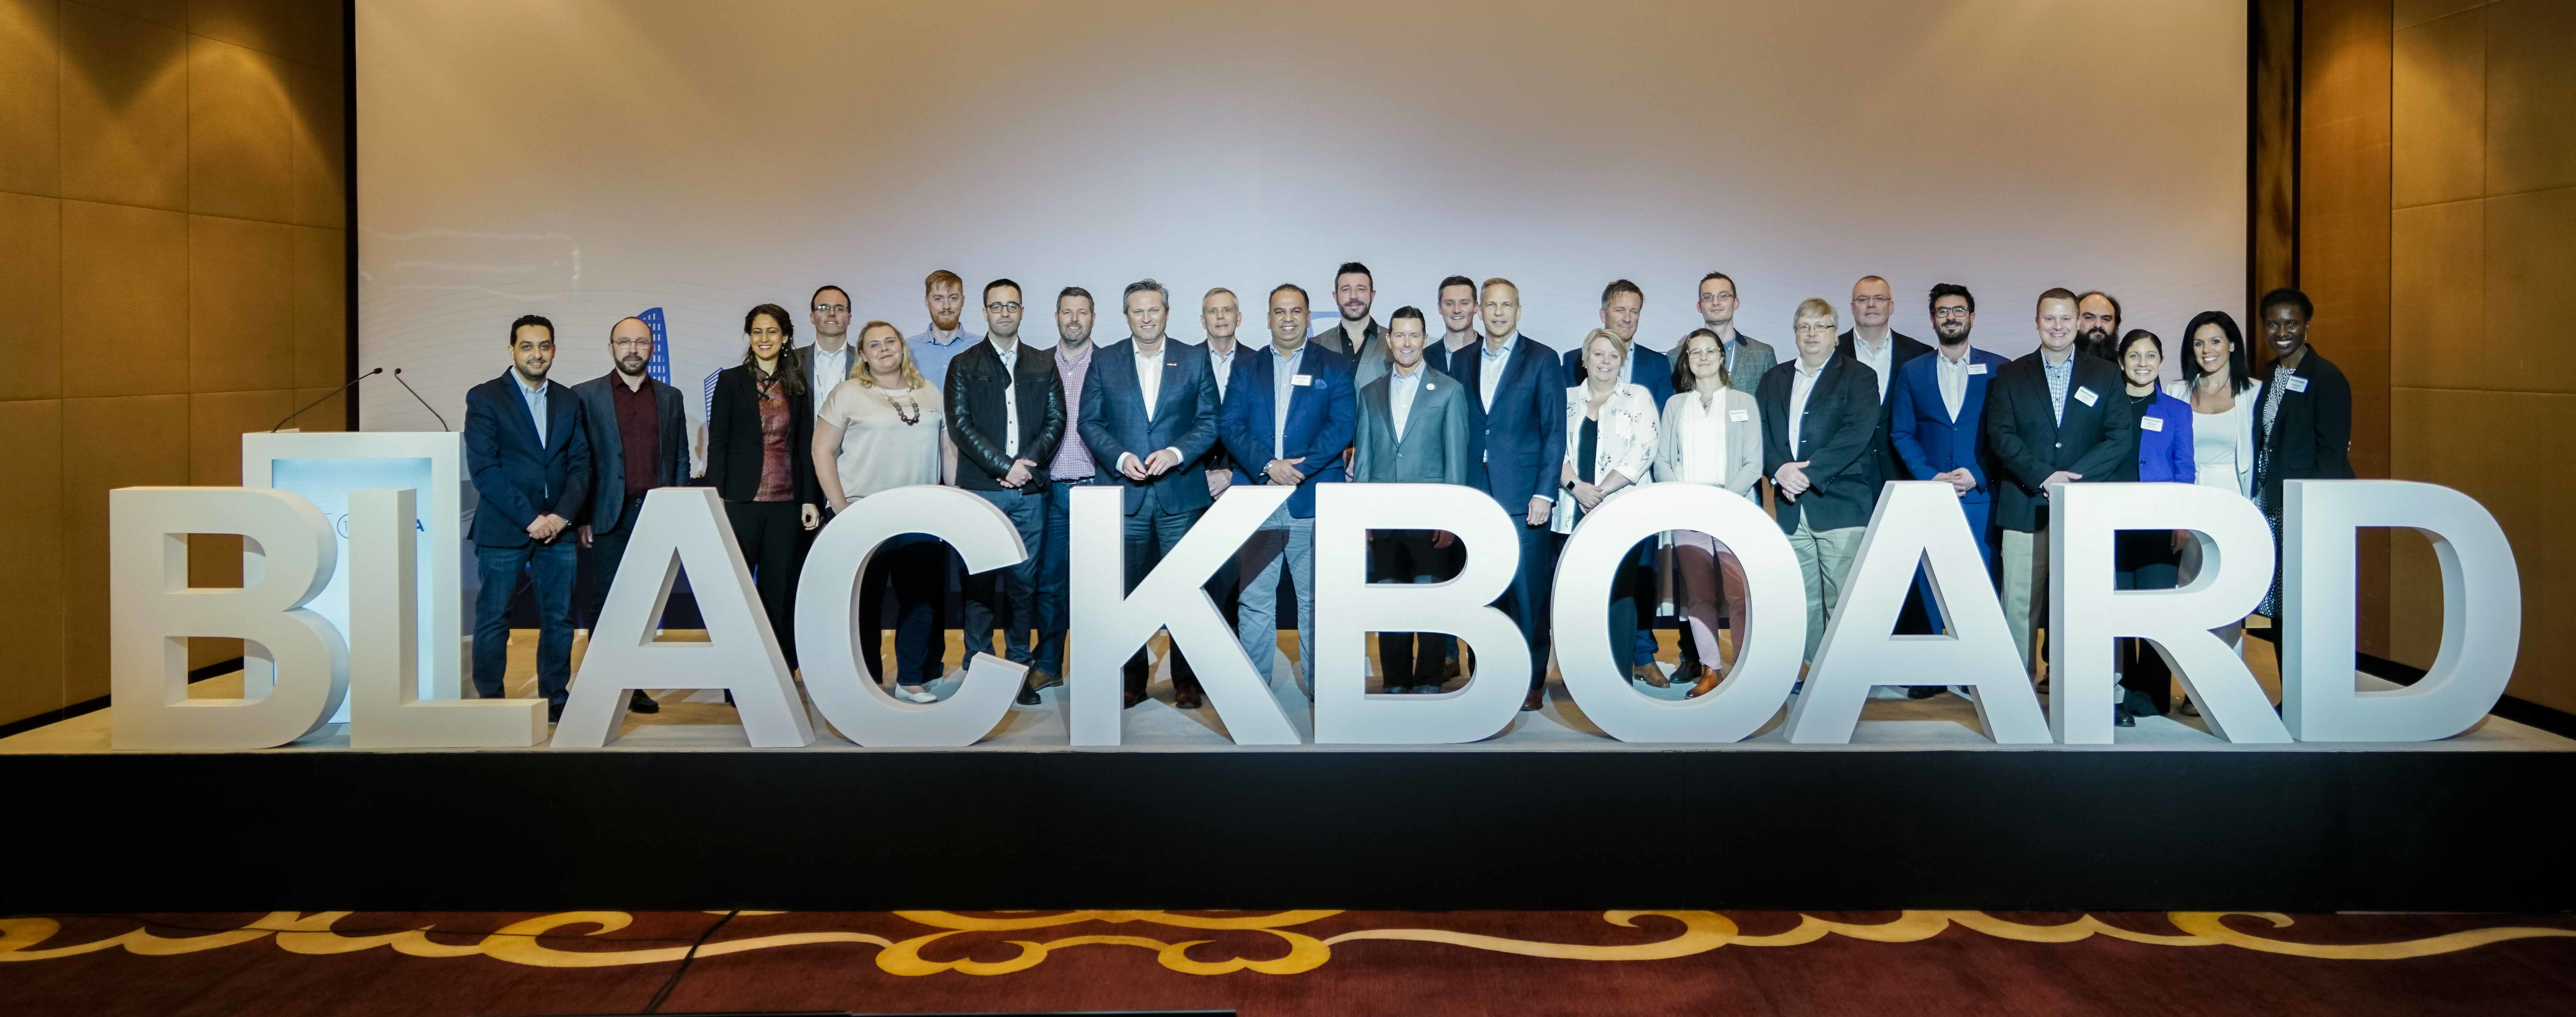 2018 TLC attendees standing behind large letters that spell out 'BLACKBOARD'